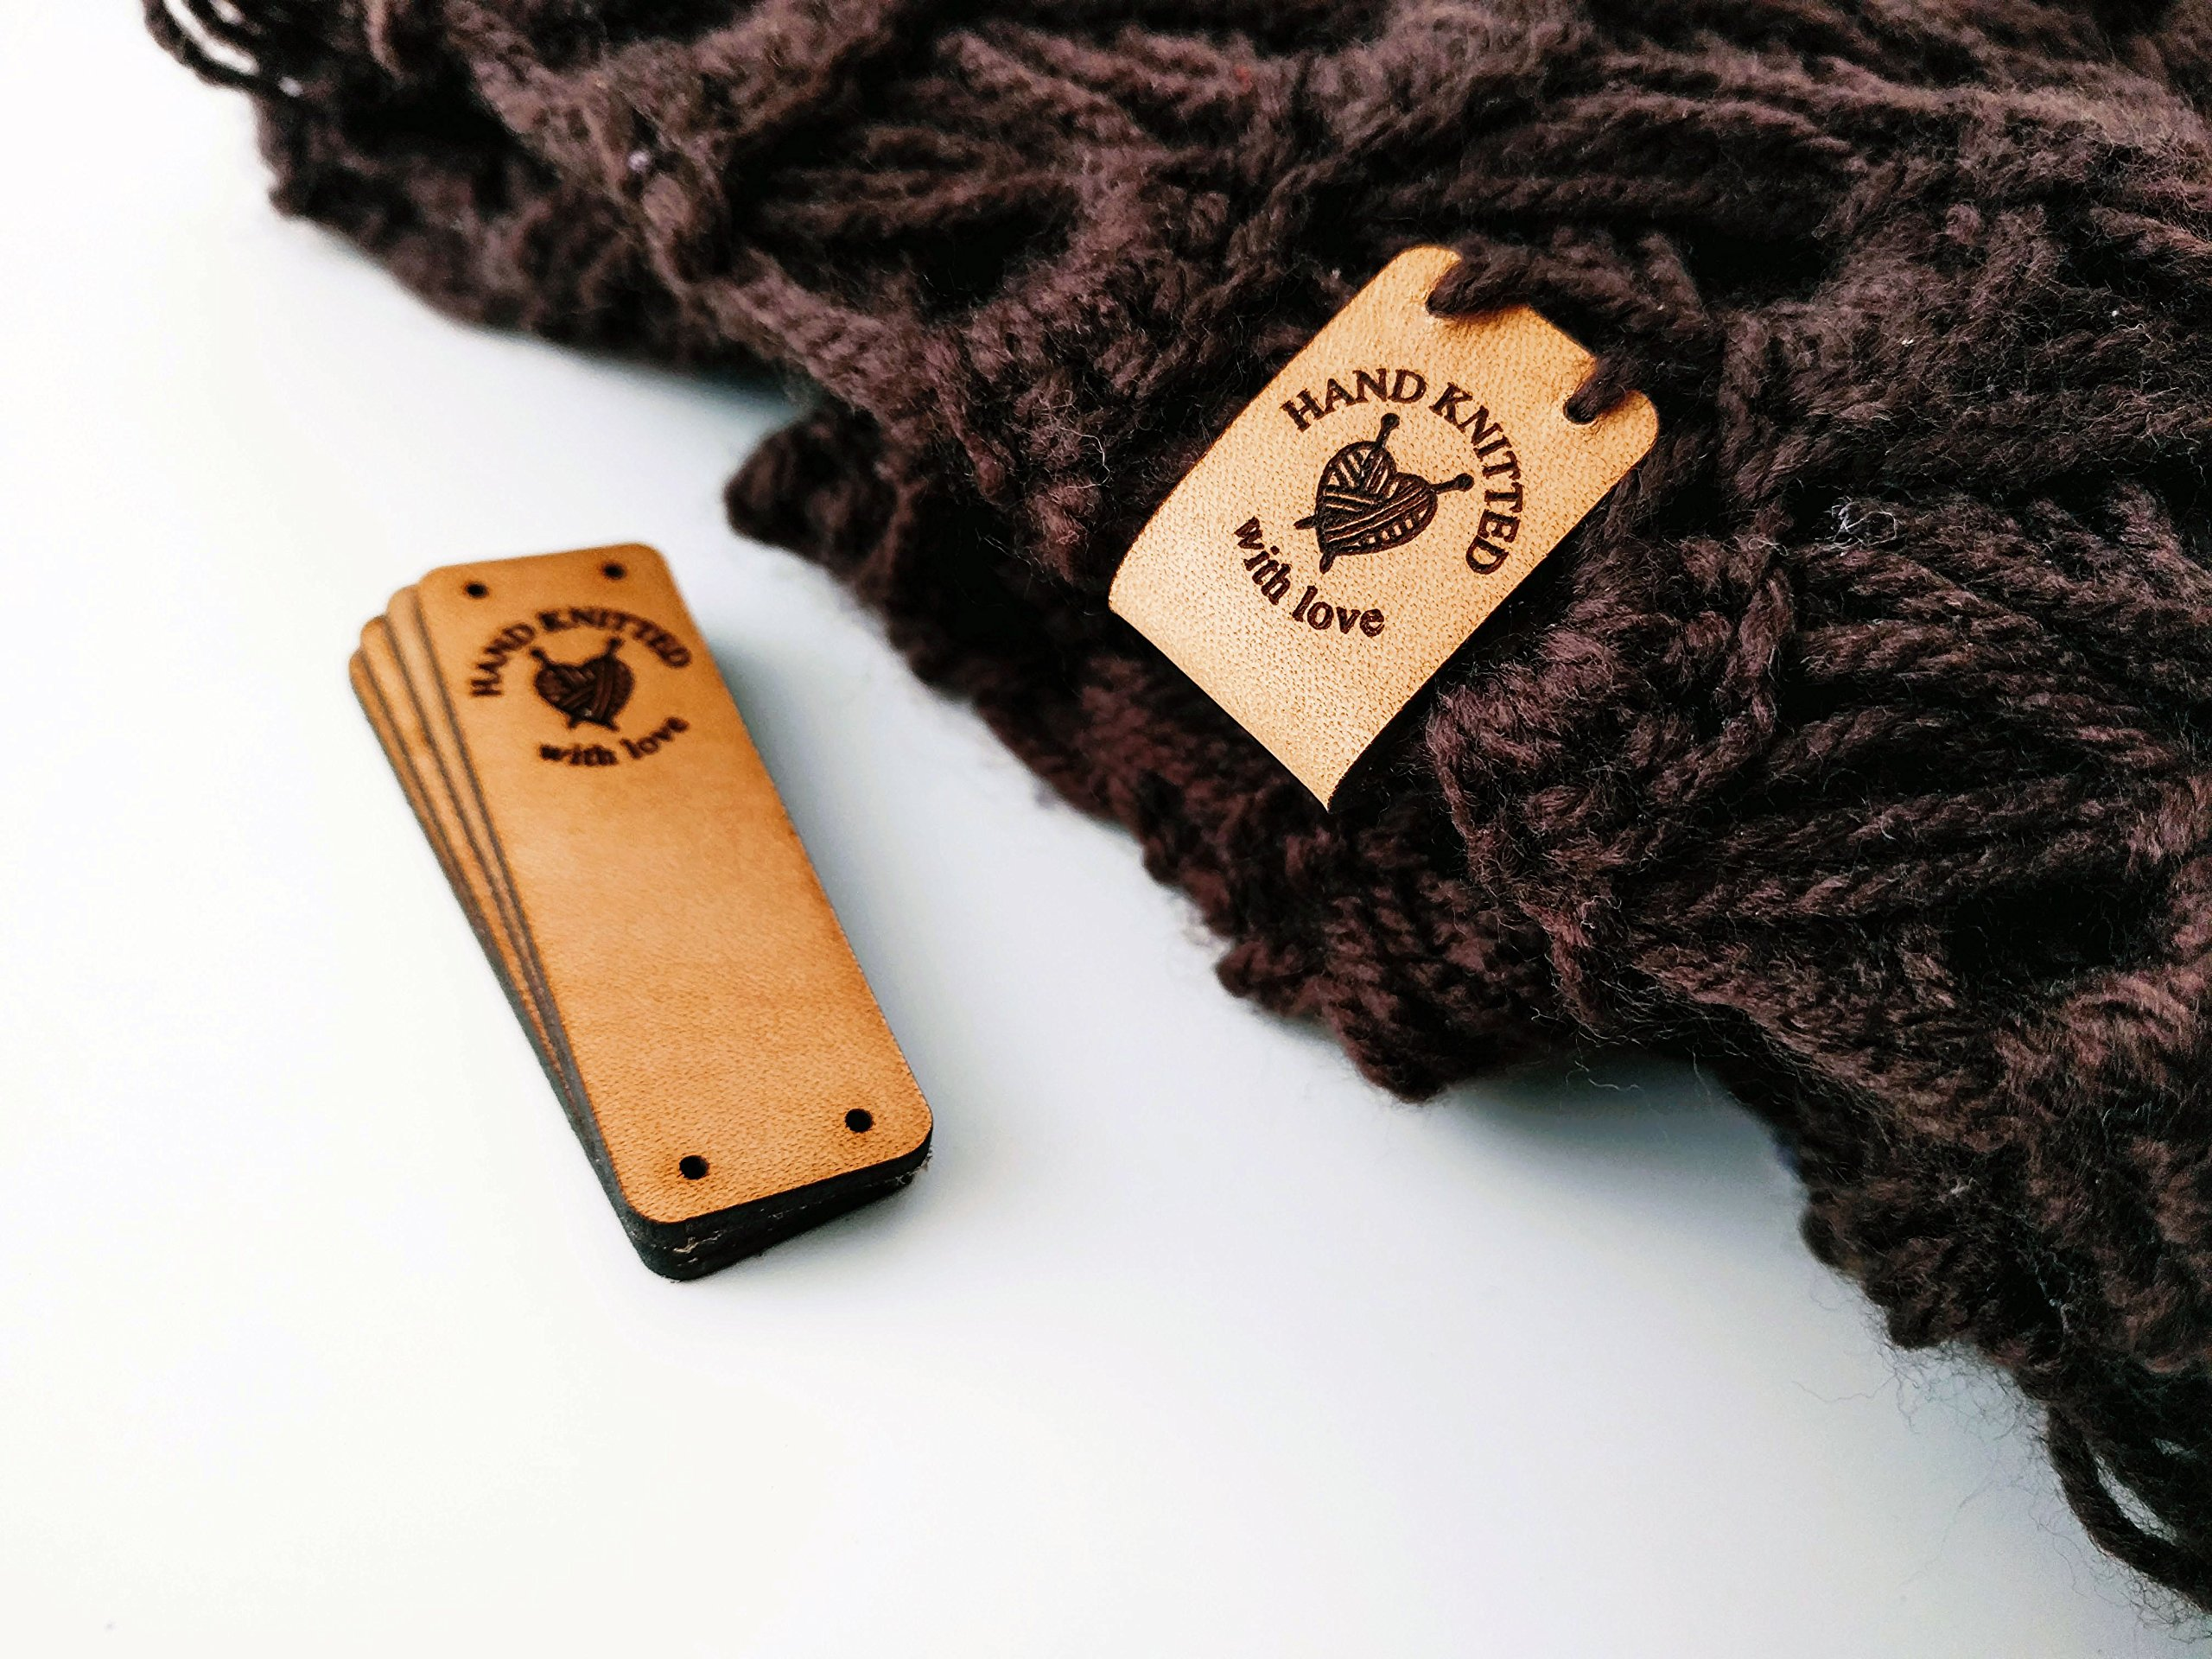 Customizable | Handmade Leather Labels O3''Hand Knitted with Love'' | 15 pcs | Exclusive Engraved Genuine Italian Leather Tags by 3DP (Image #1)